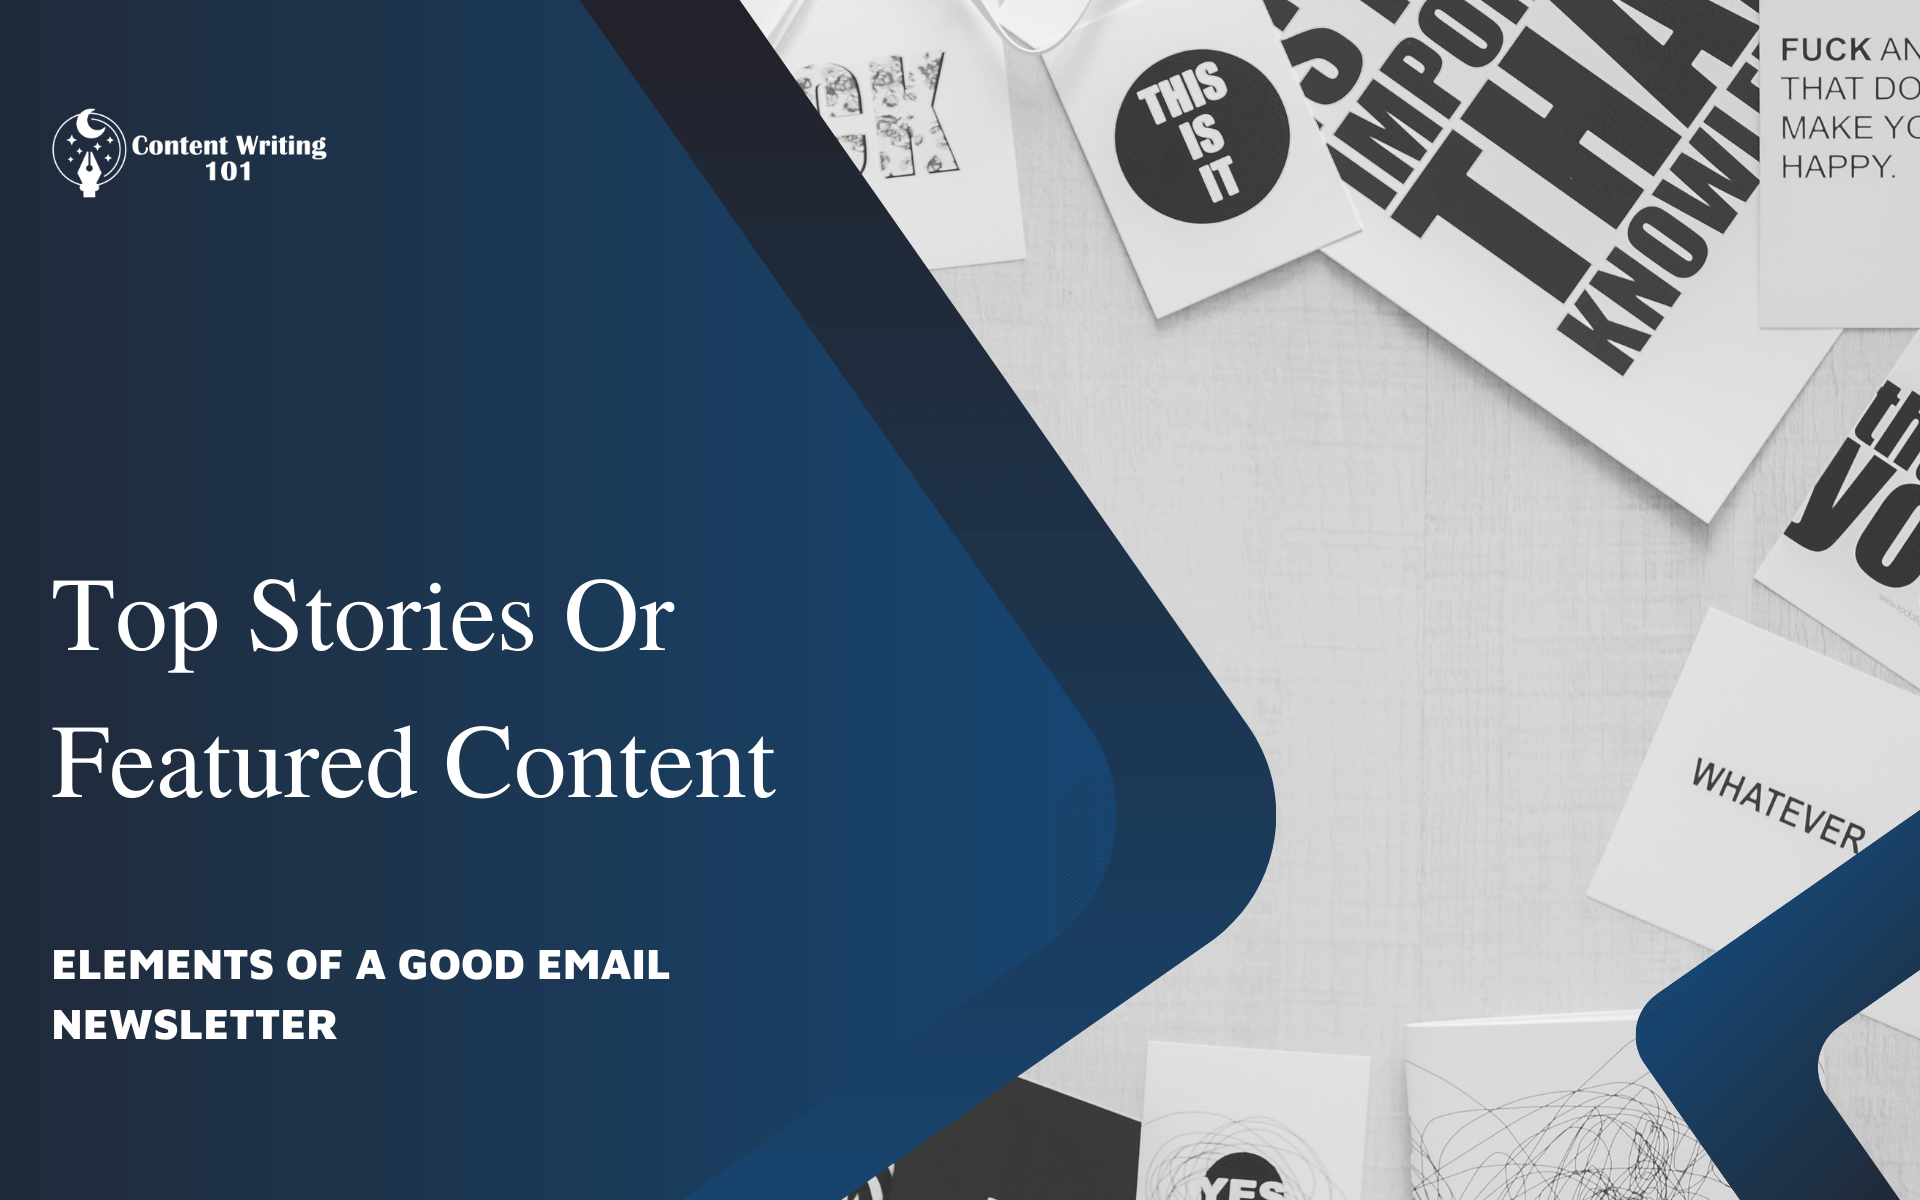 3. Top Stories Or Featured Content